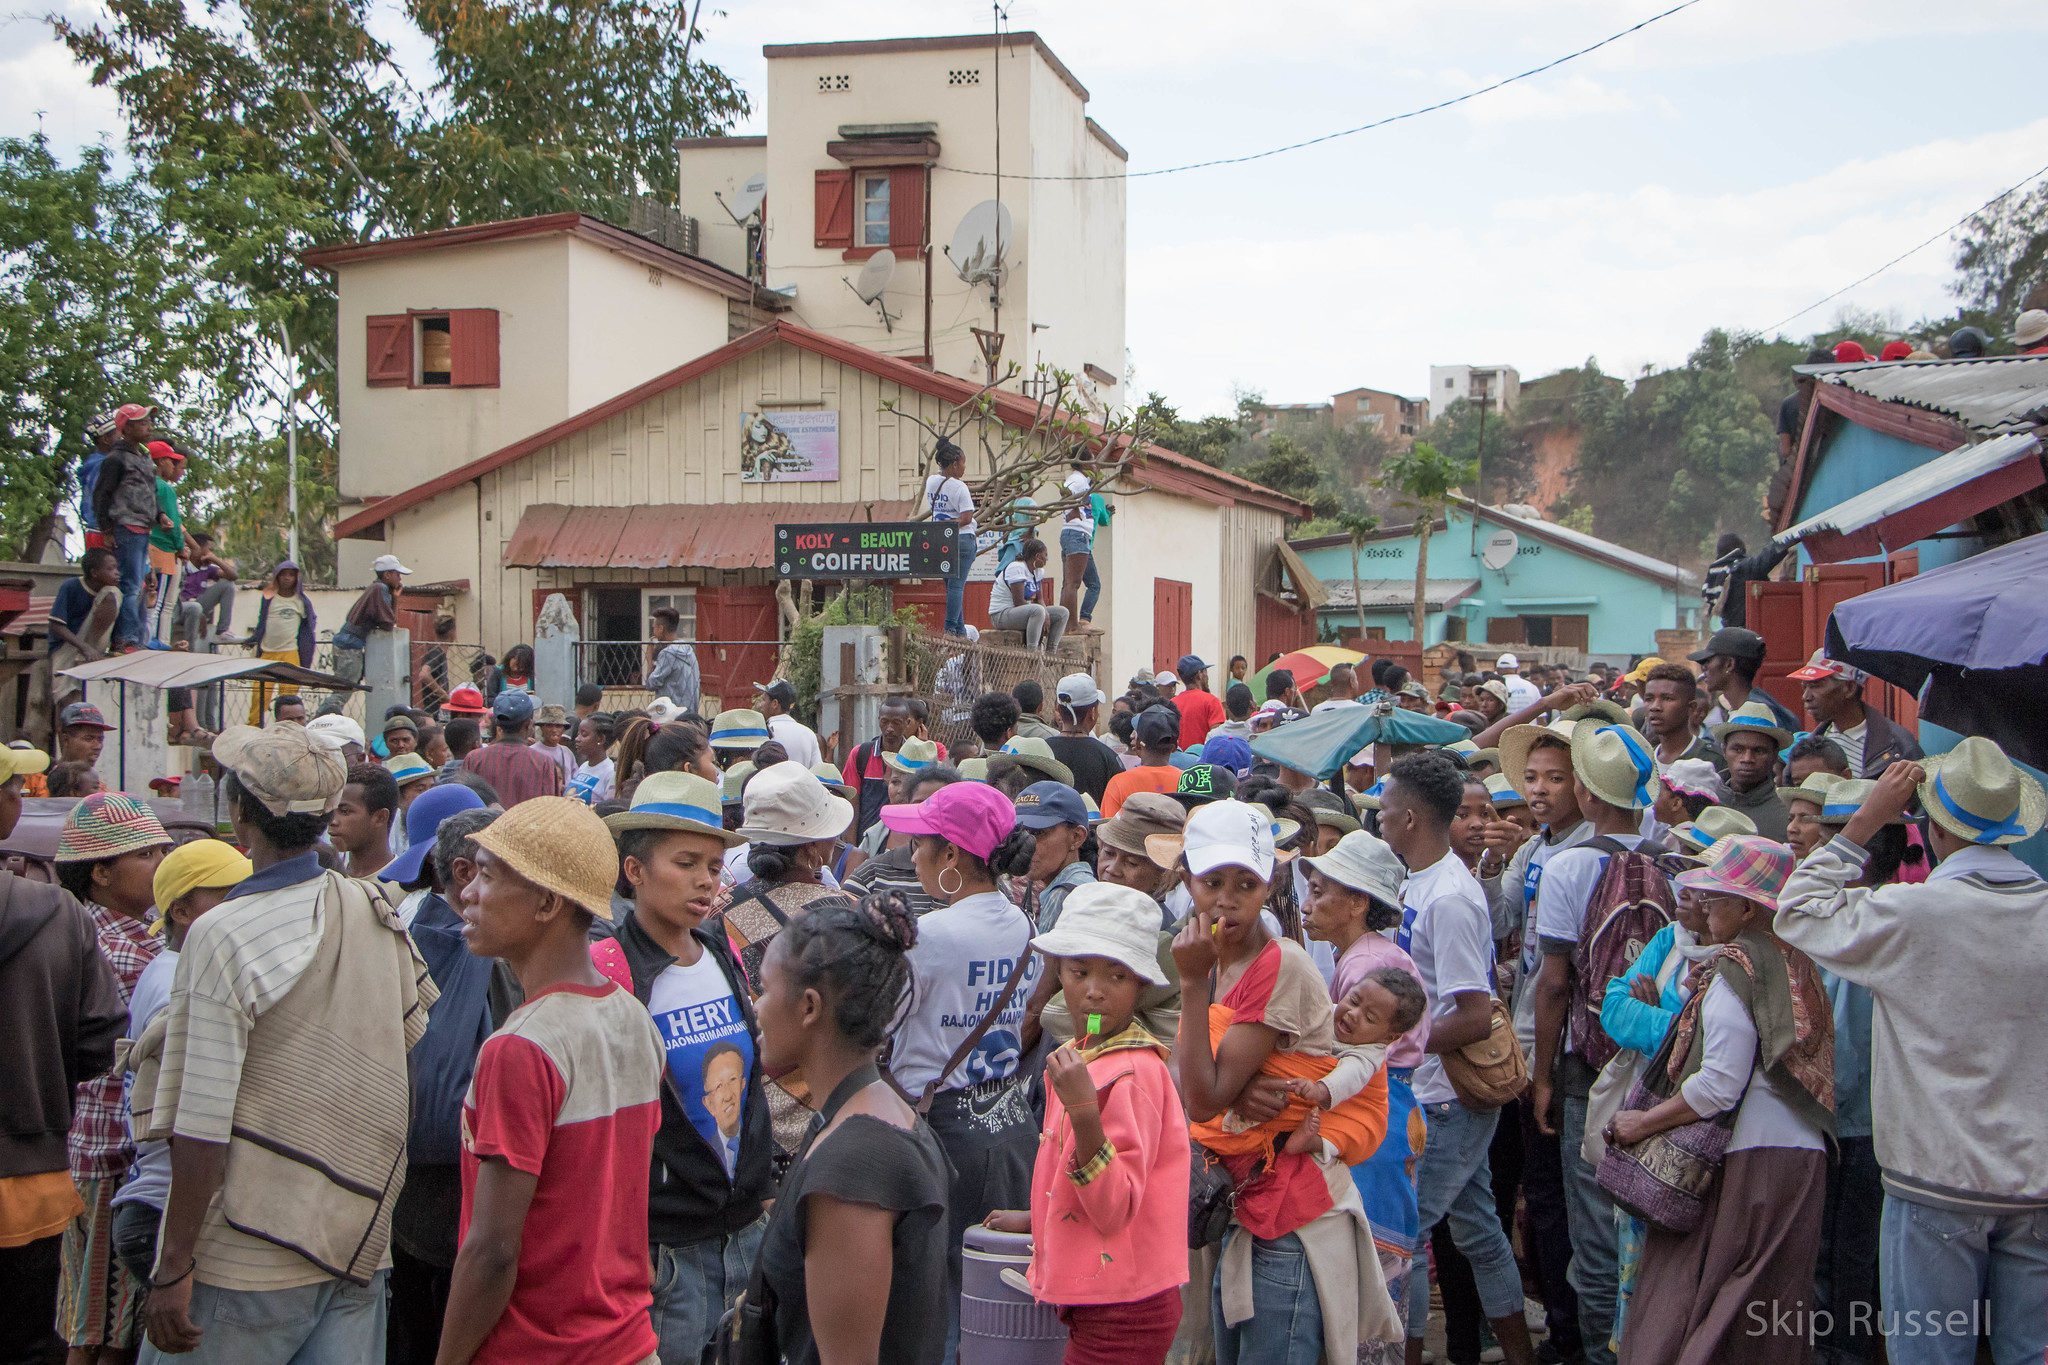 Political rally during the presidential campaign in Madagascar. Photo: Skip Russell (CC BY-NC-ND 2.0)